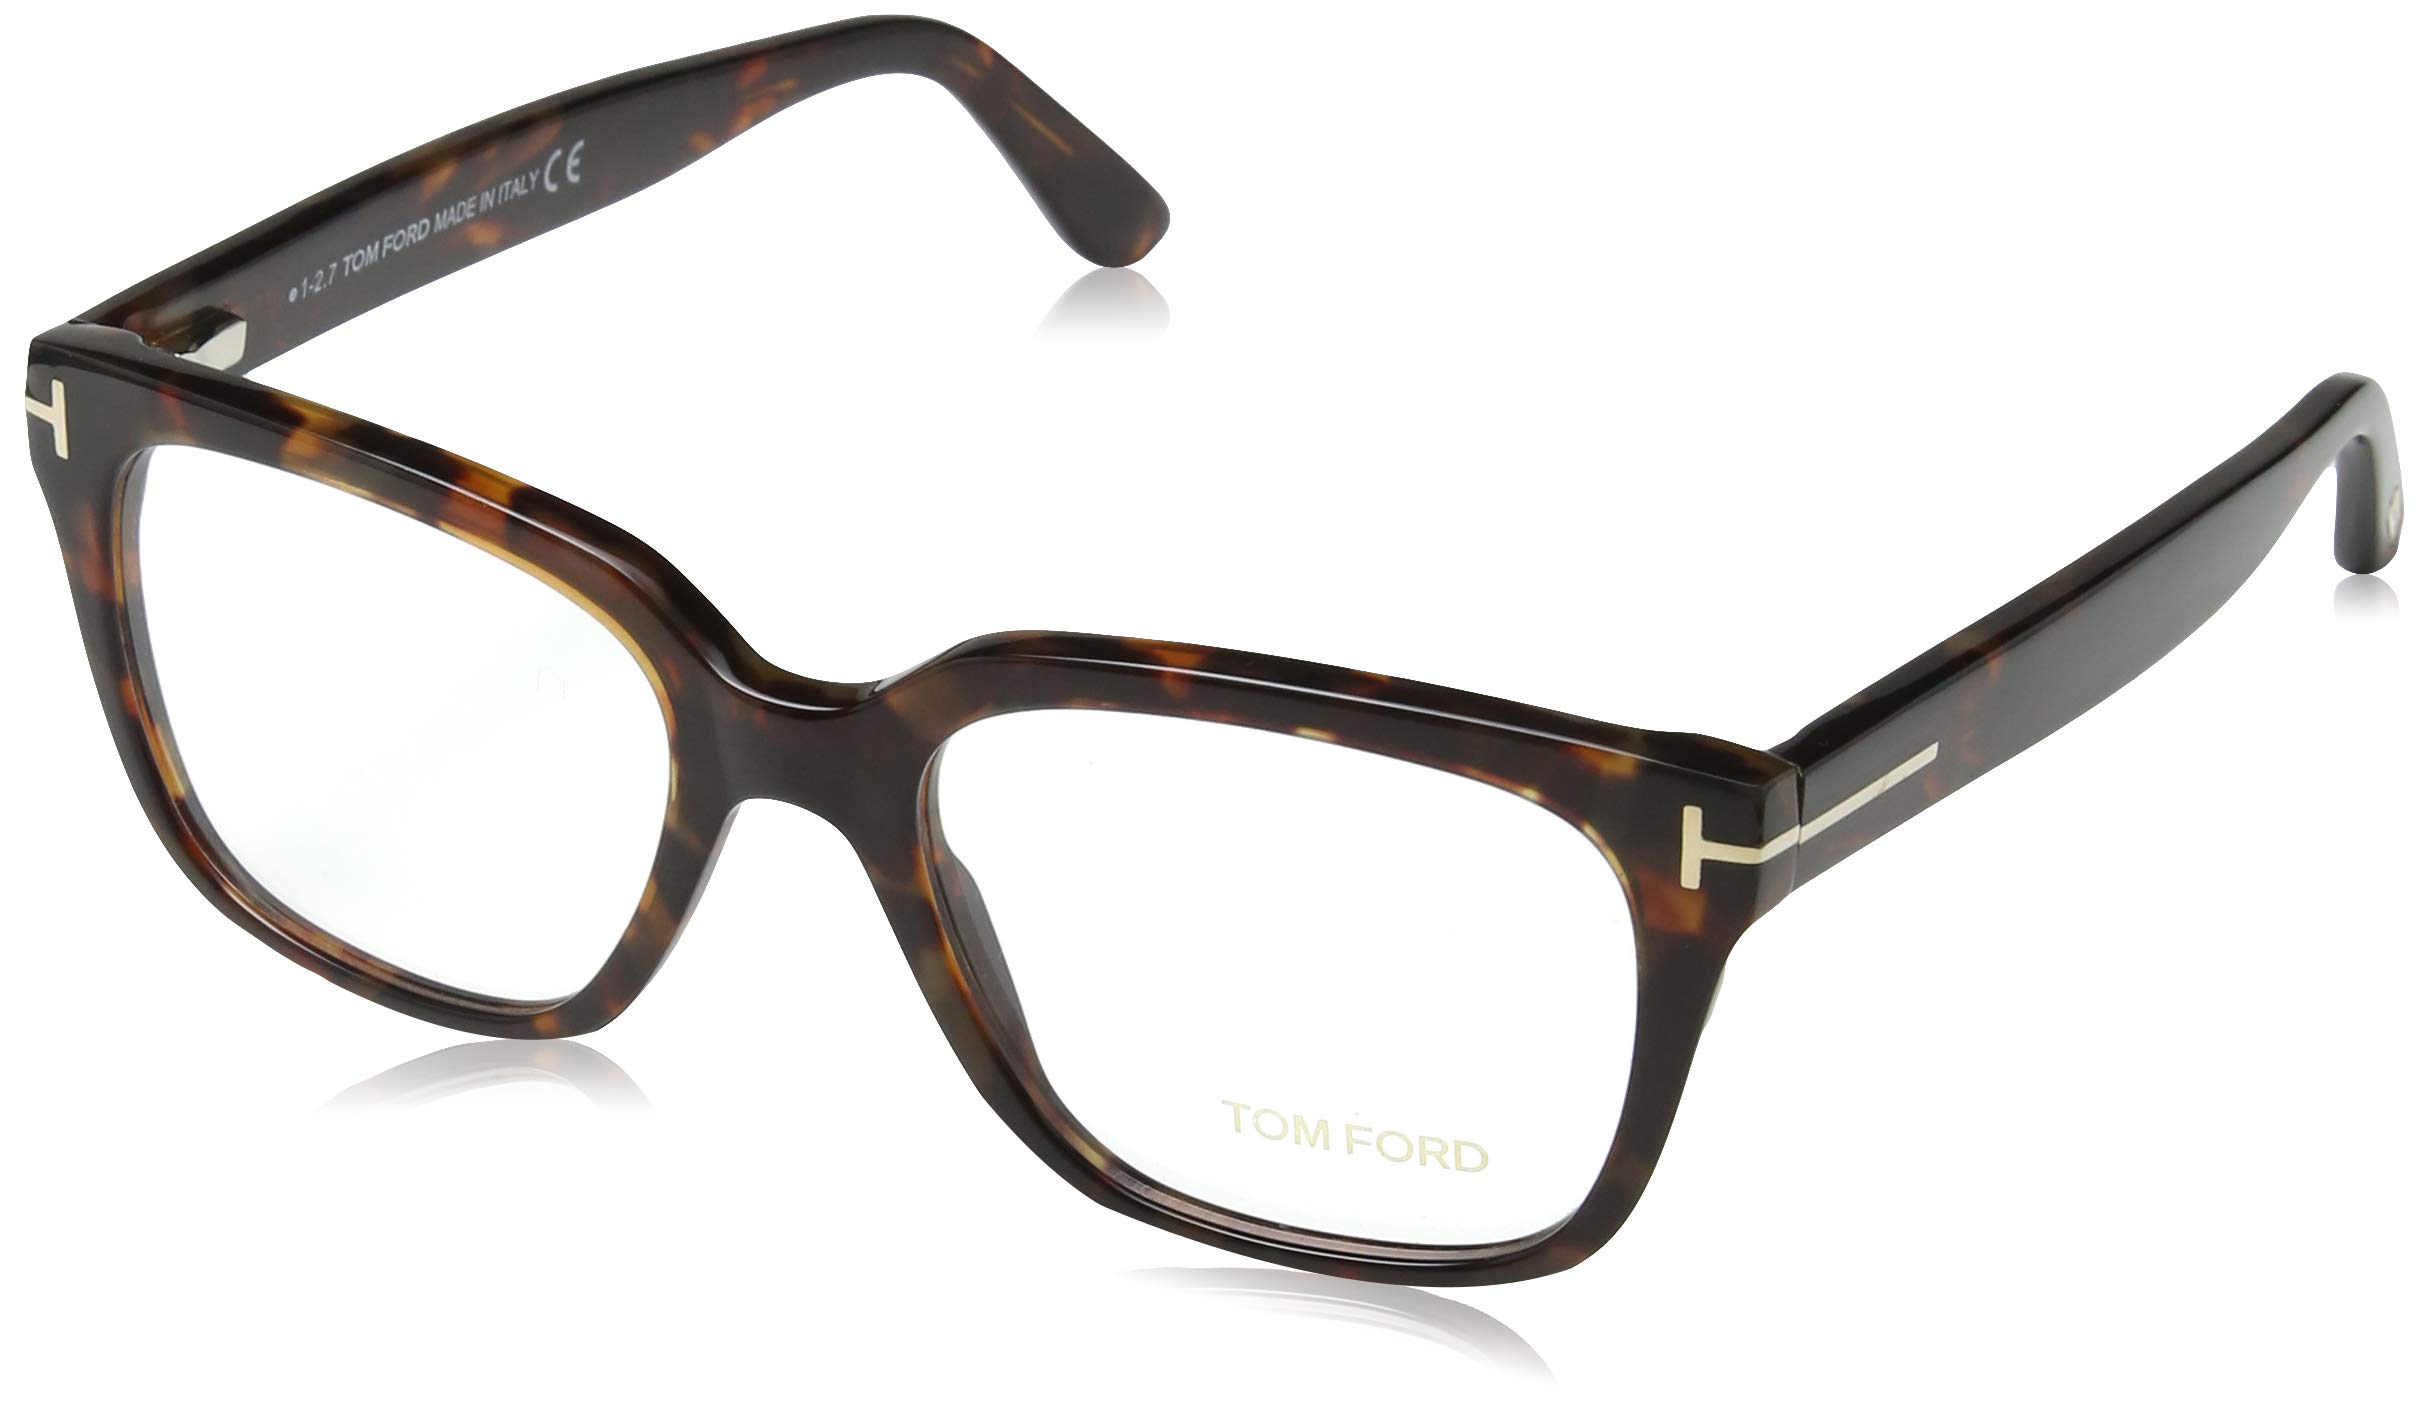 Optical SoleilMarronbraunHomme 054 Ford Frame Ft5477 53 Lunettes Tom De Ygv76ybf